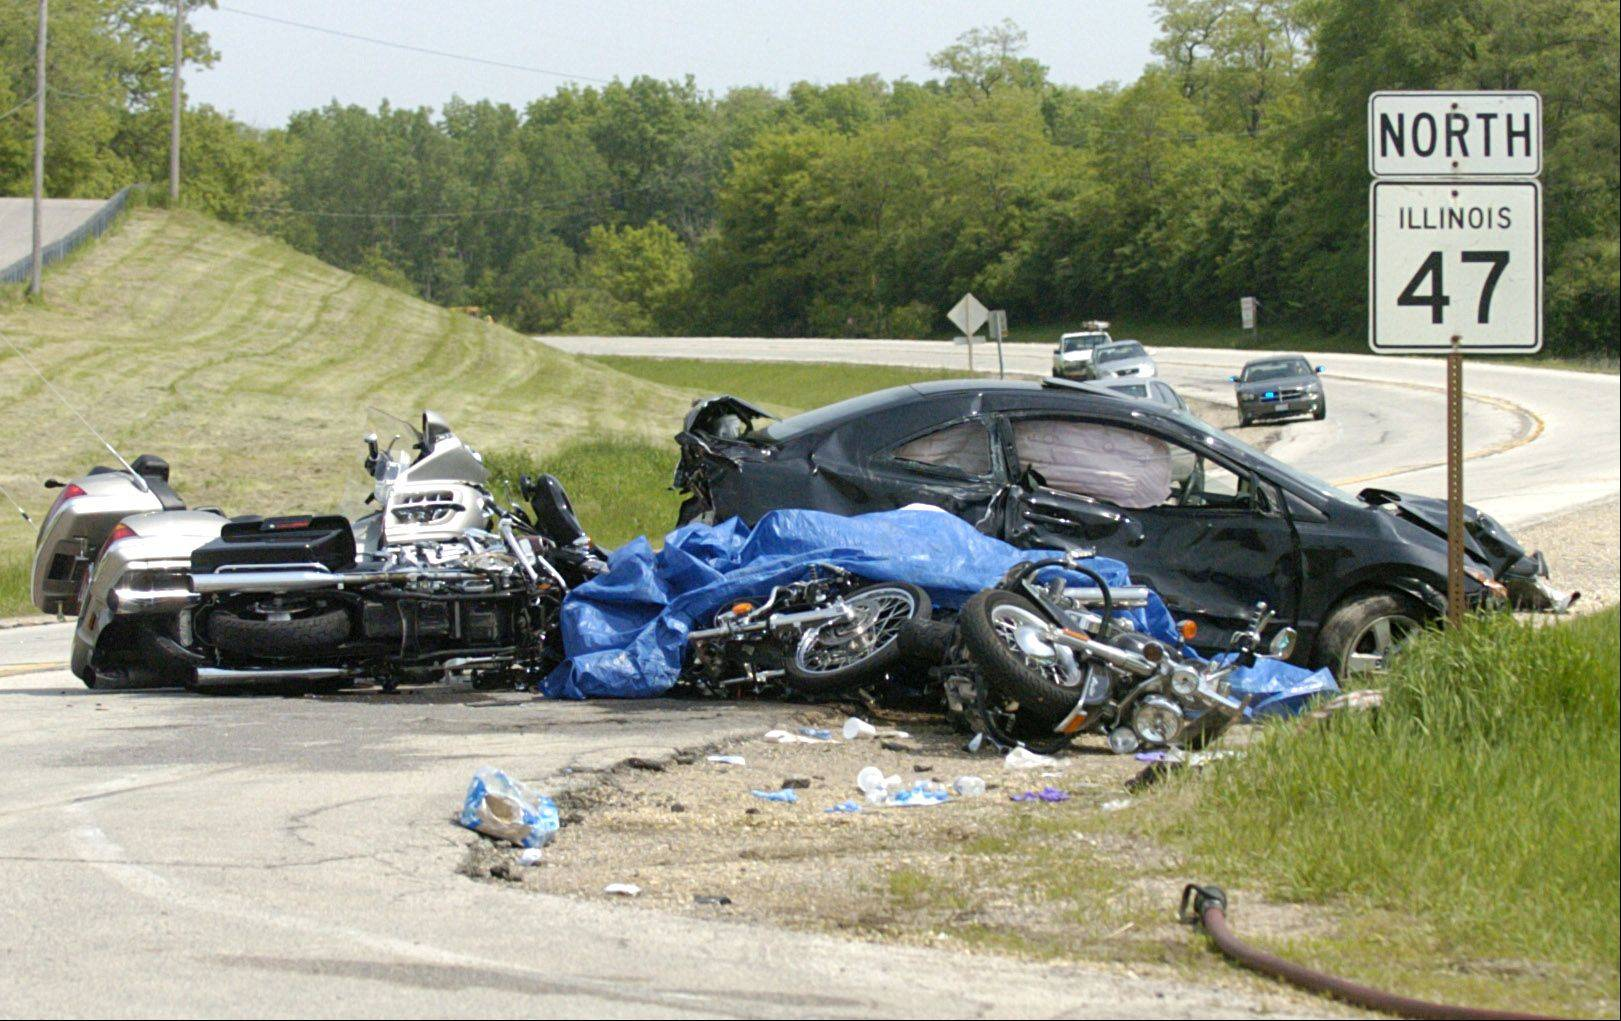 Route 47 just north of Smith Road between Elburn and Sugar Grove was the scene of a double fatal accident involving six motorcycles and three cars May 23, 2009.